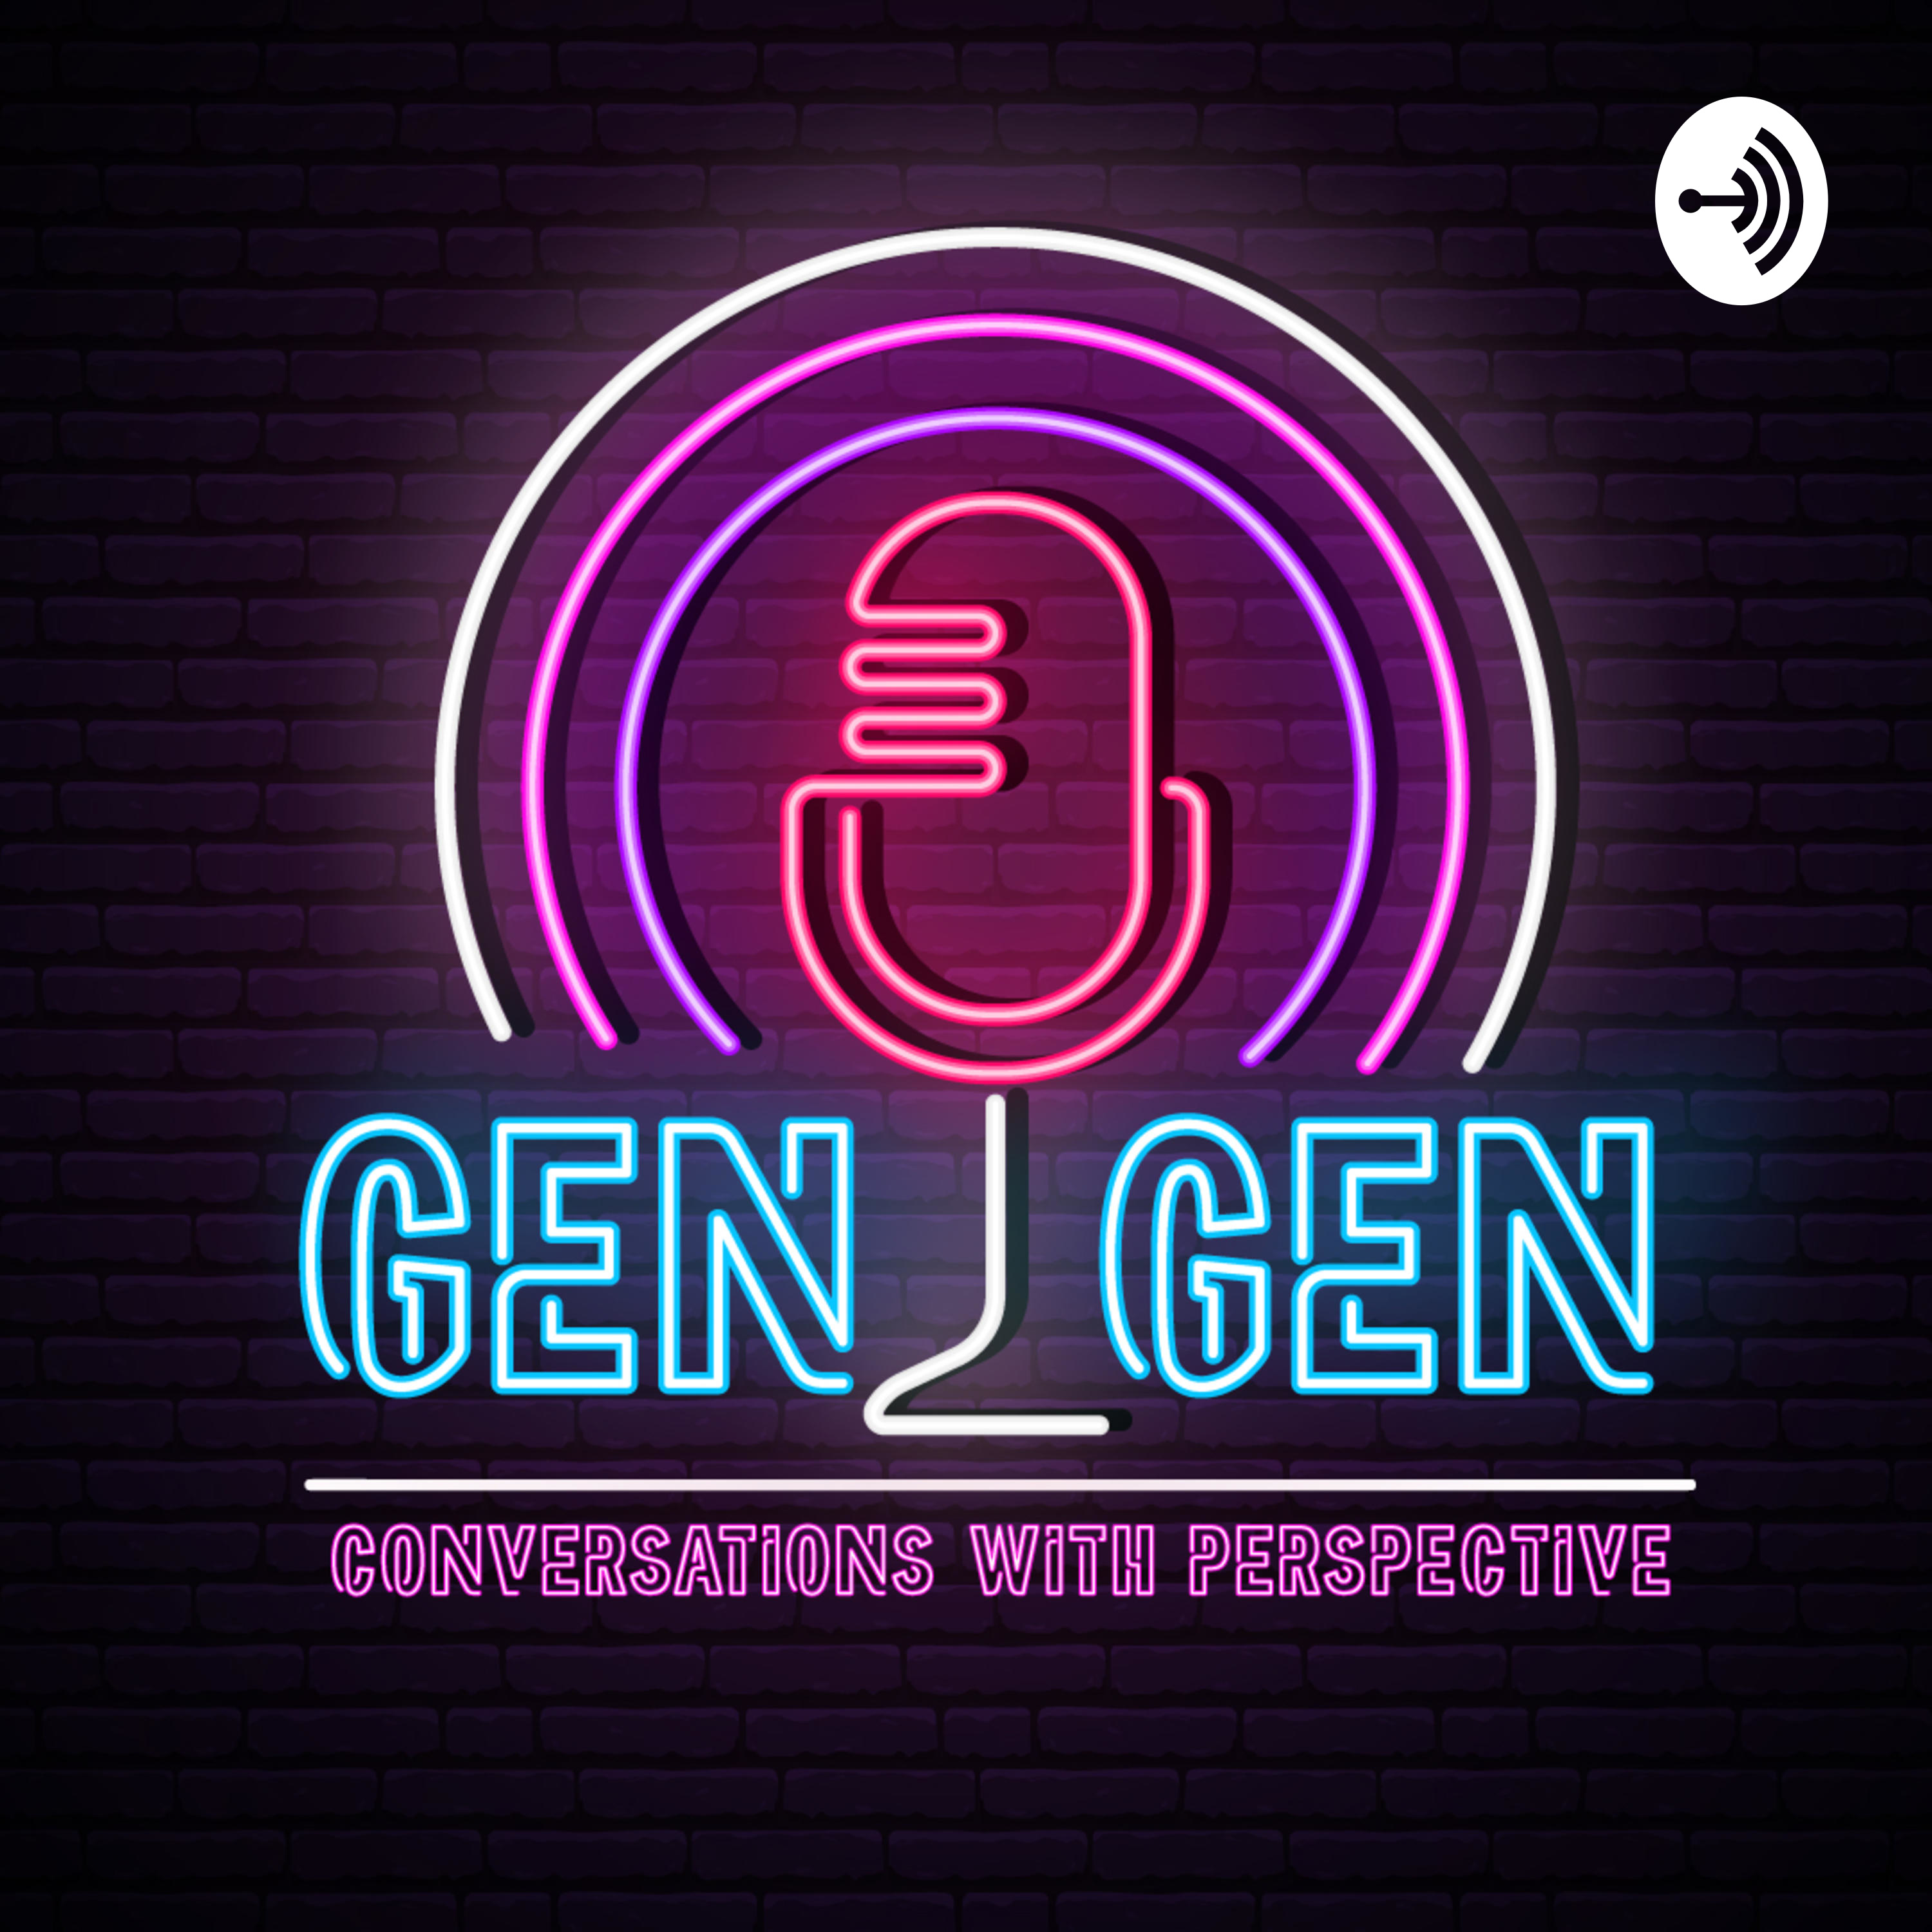 Gen 2 Gen: Conversations with Perspective